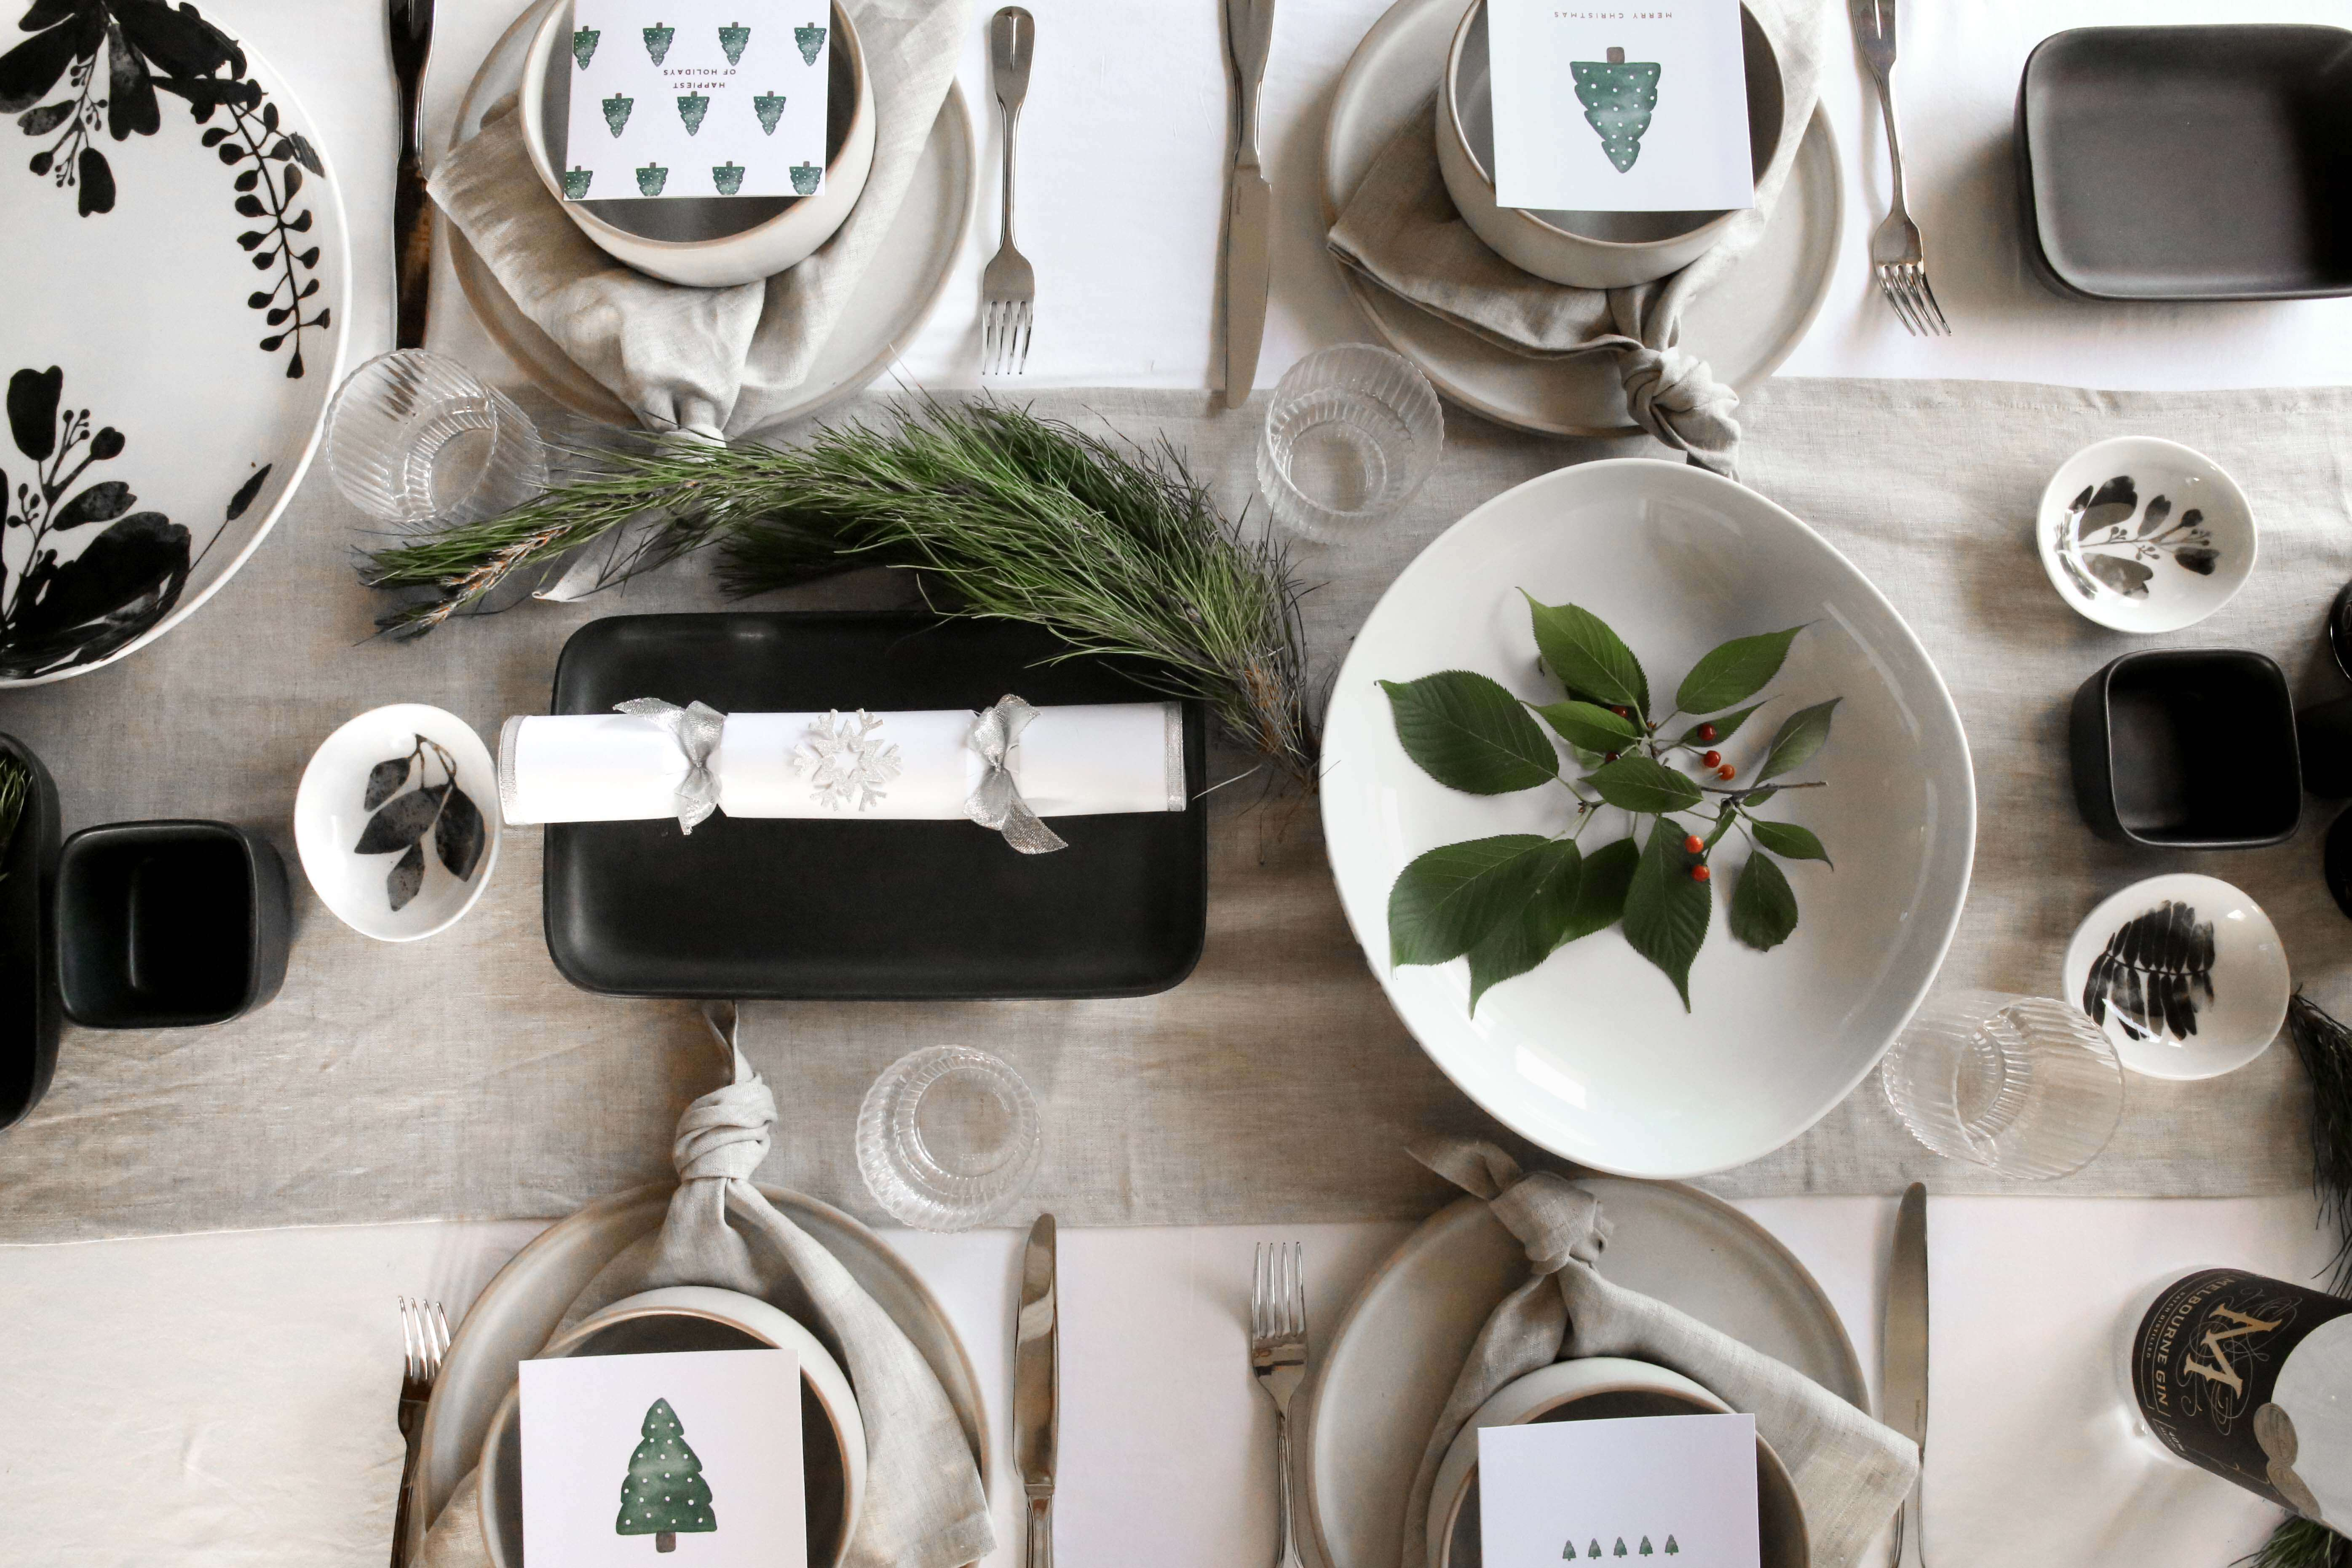 Top 3 Ways to Style Your Christmas Table